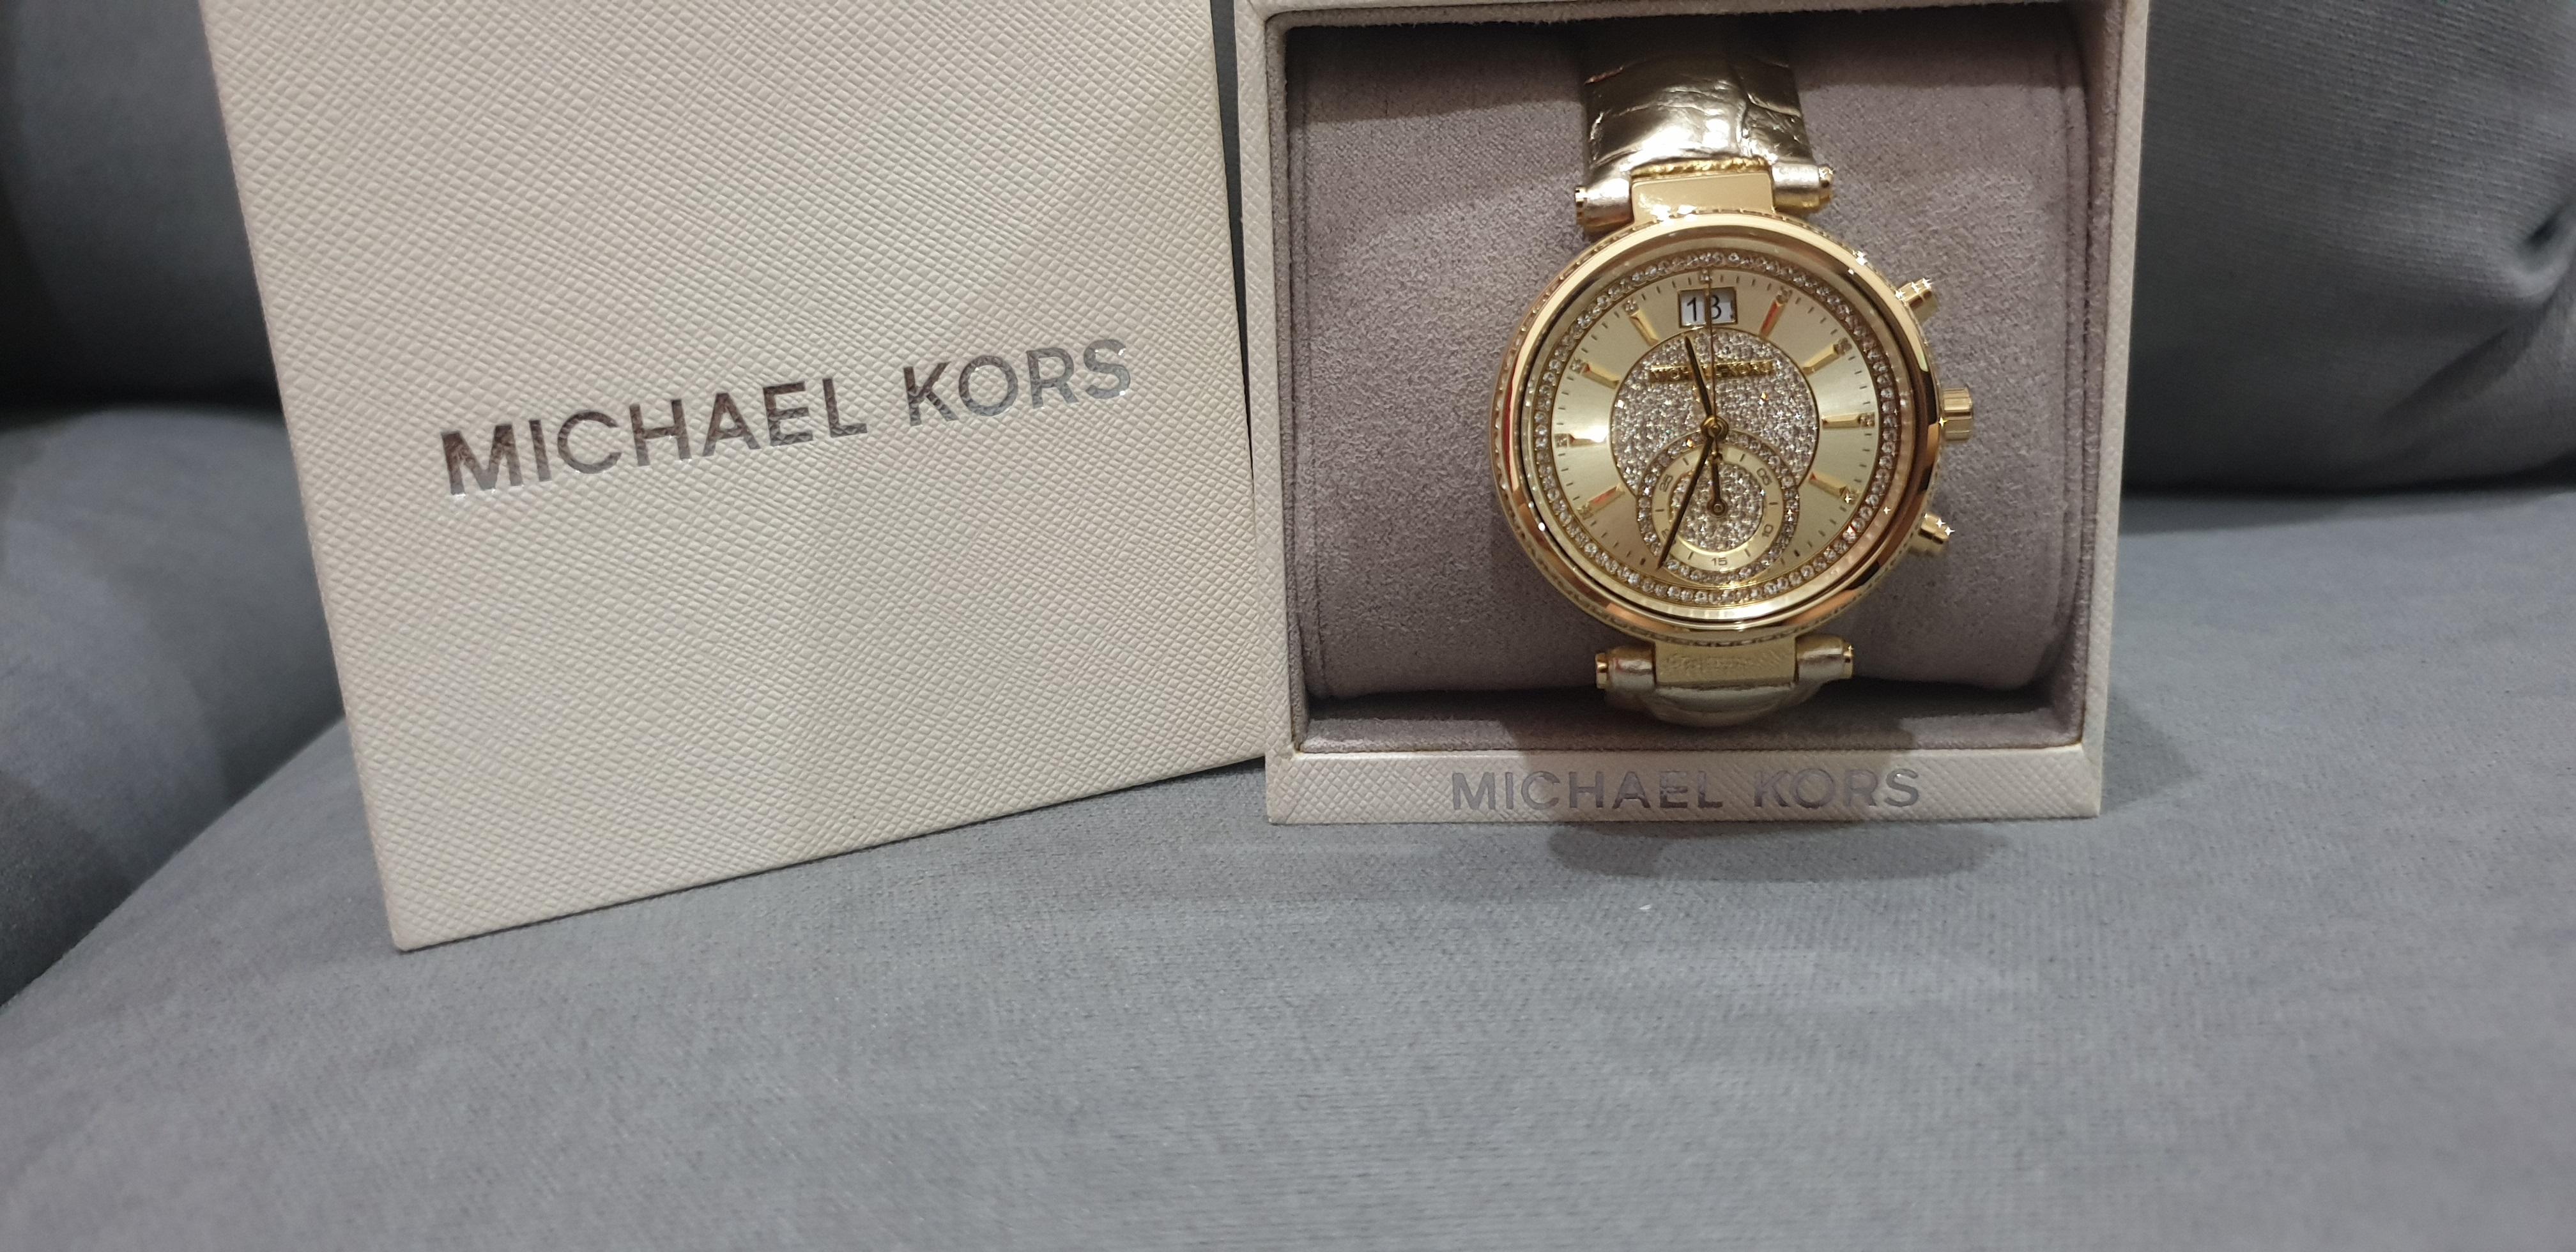 d5c692555c39 Michael Kors Sawyer Metallic Gold 39mm case diameter , Chronograph  Function, Date display , Quartz movement. Condition : 10/10 Brand new unused  Croc embosed ...